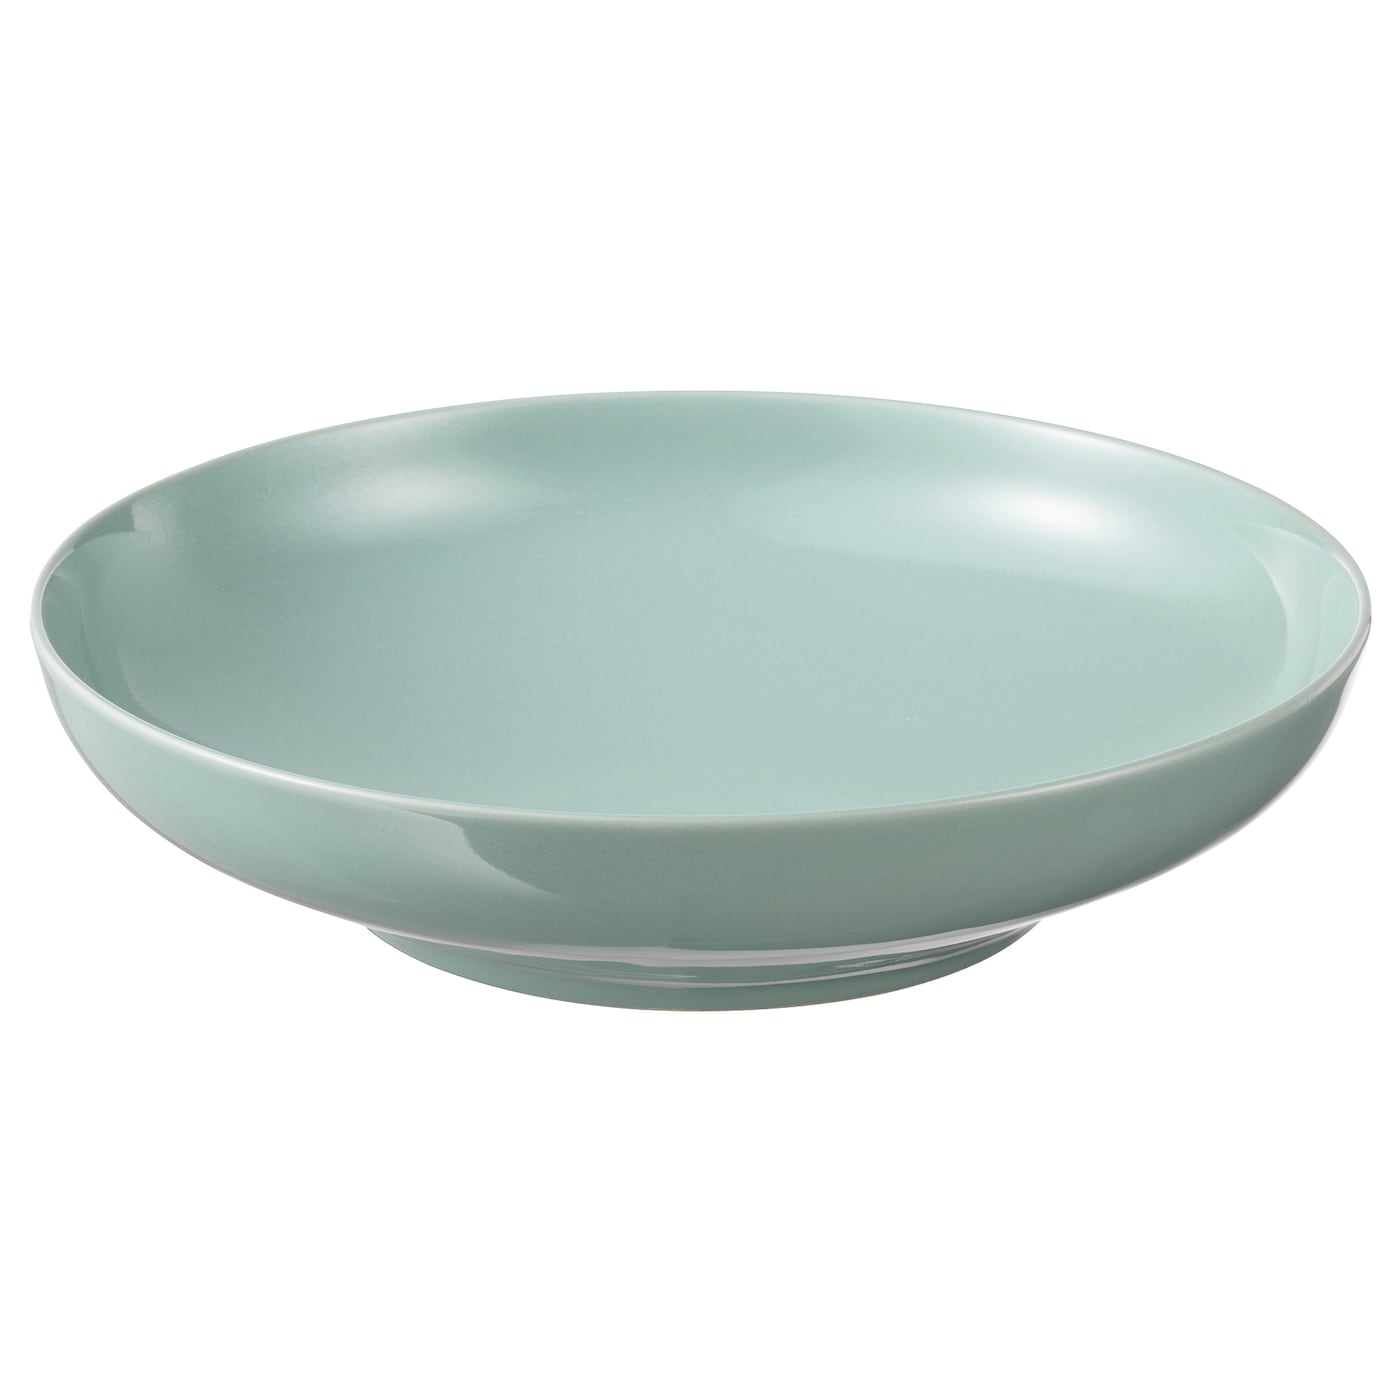 IKEA ENTYDIG bowl Practical and useful deep plate/bowl, suitable both for serving and eating from.